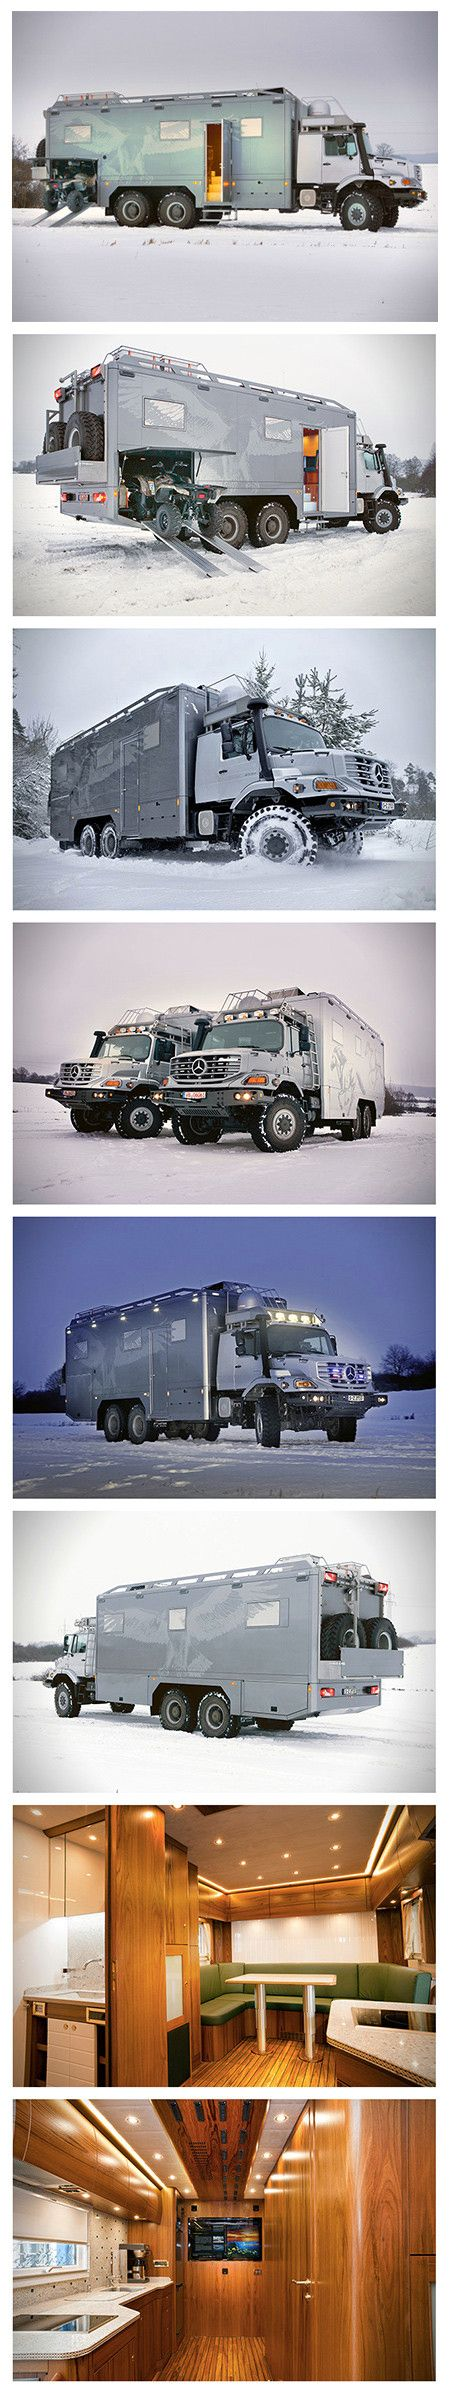 "Let's behold the behemoth that is the Zetros, an all-wheel drive (6×6) luxury vehicle designed for hunting and expeditions over any type of terrain. A 7.2 liter in-line six-cylinder delivers 326 horsepower, but it gets even more interesting inside. That's where you'll find a marble floor bathroom with underfloor heating, plenty of sleeping space, two flat panel TVs (40"" and 46""), satellite dish, Bose audio system, a safe for your valuables and a gun safe, on-board water system for drinking…"